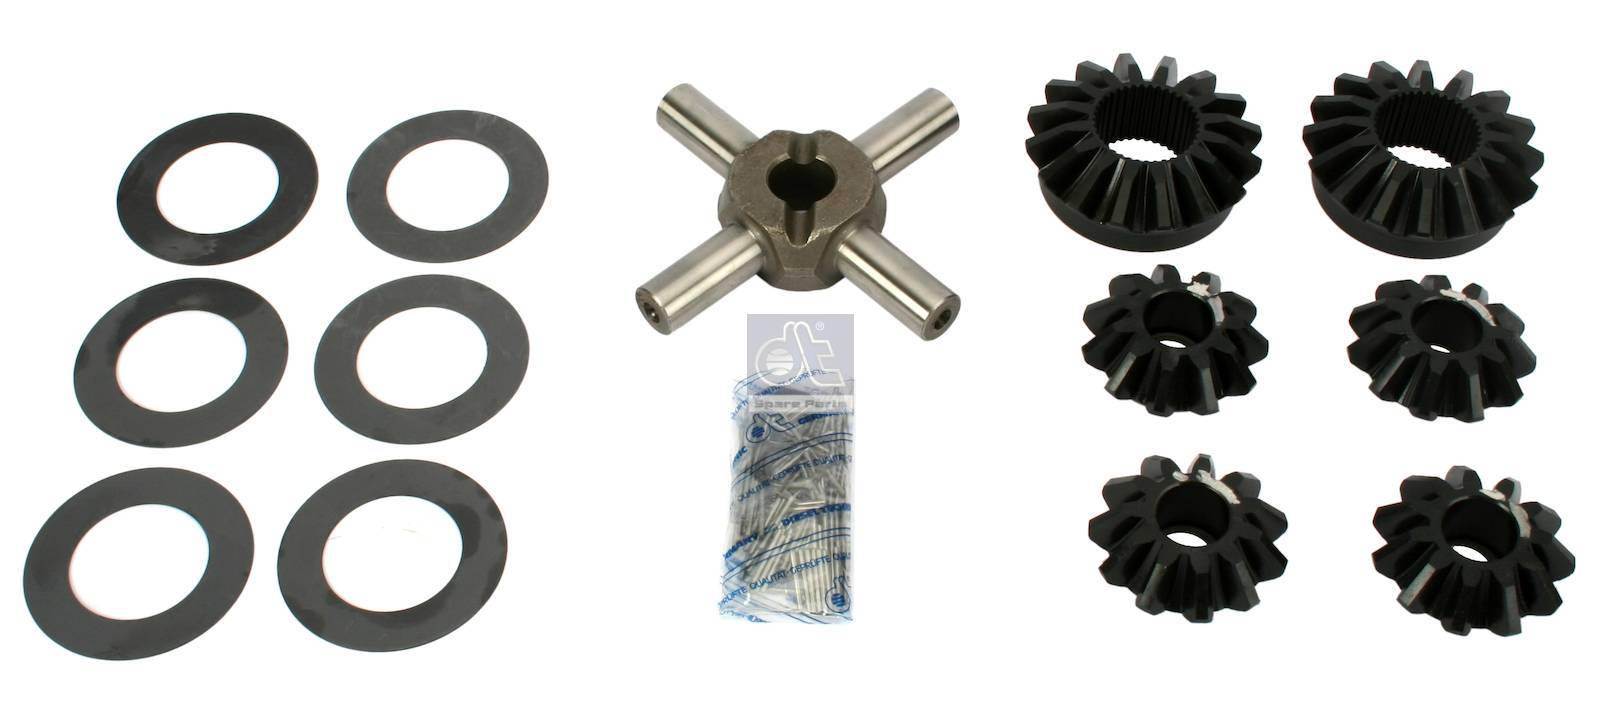 DT 2.93331 Differential kit suitable for Renault, Volvo